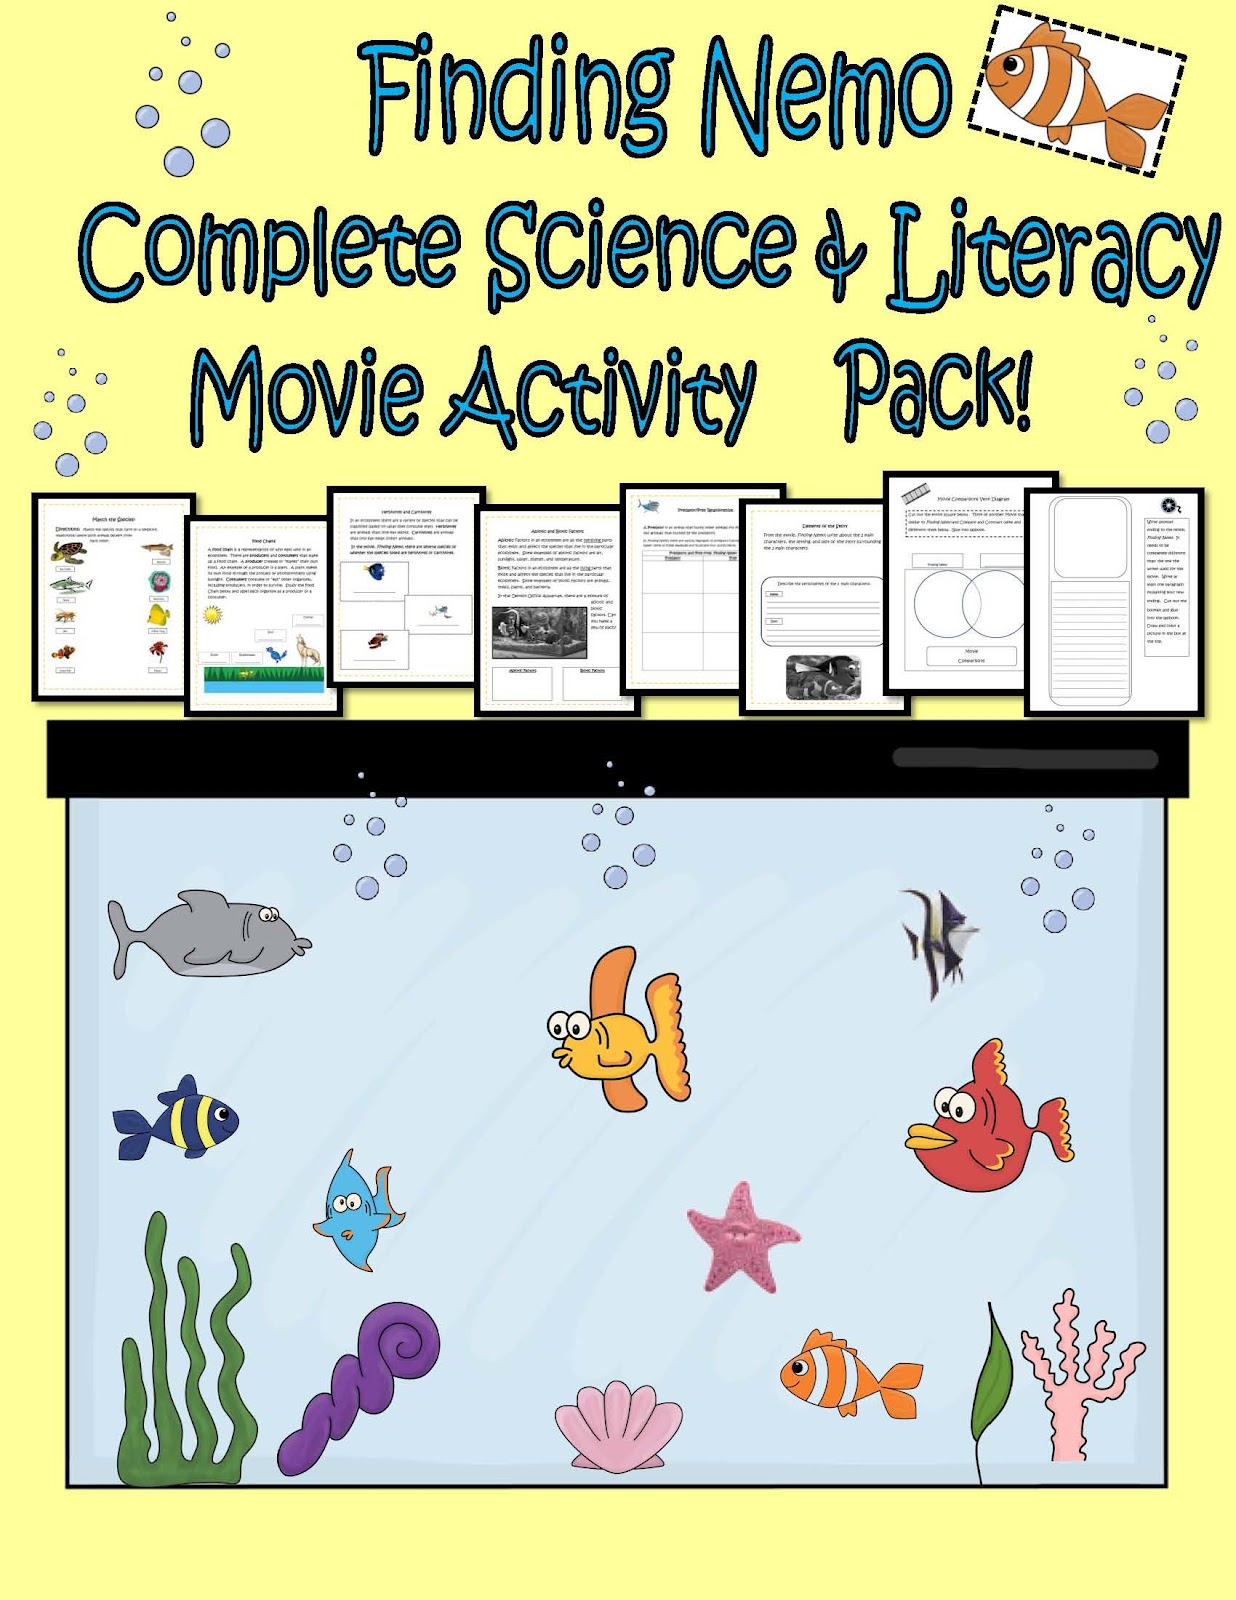 worksheet Finding Nemo Worksheet worksheets finding nemo worksheet tokyoobserver just another free esl printable made by full screen